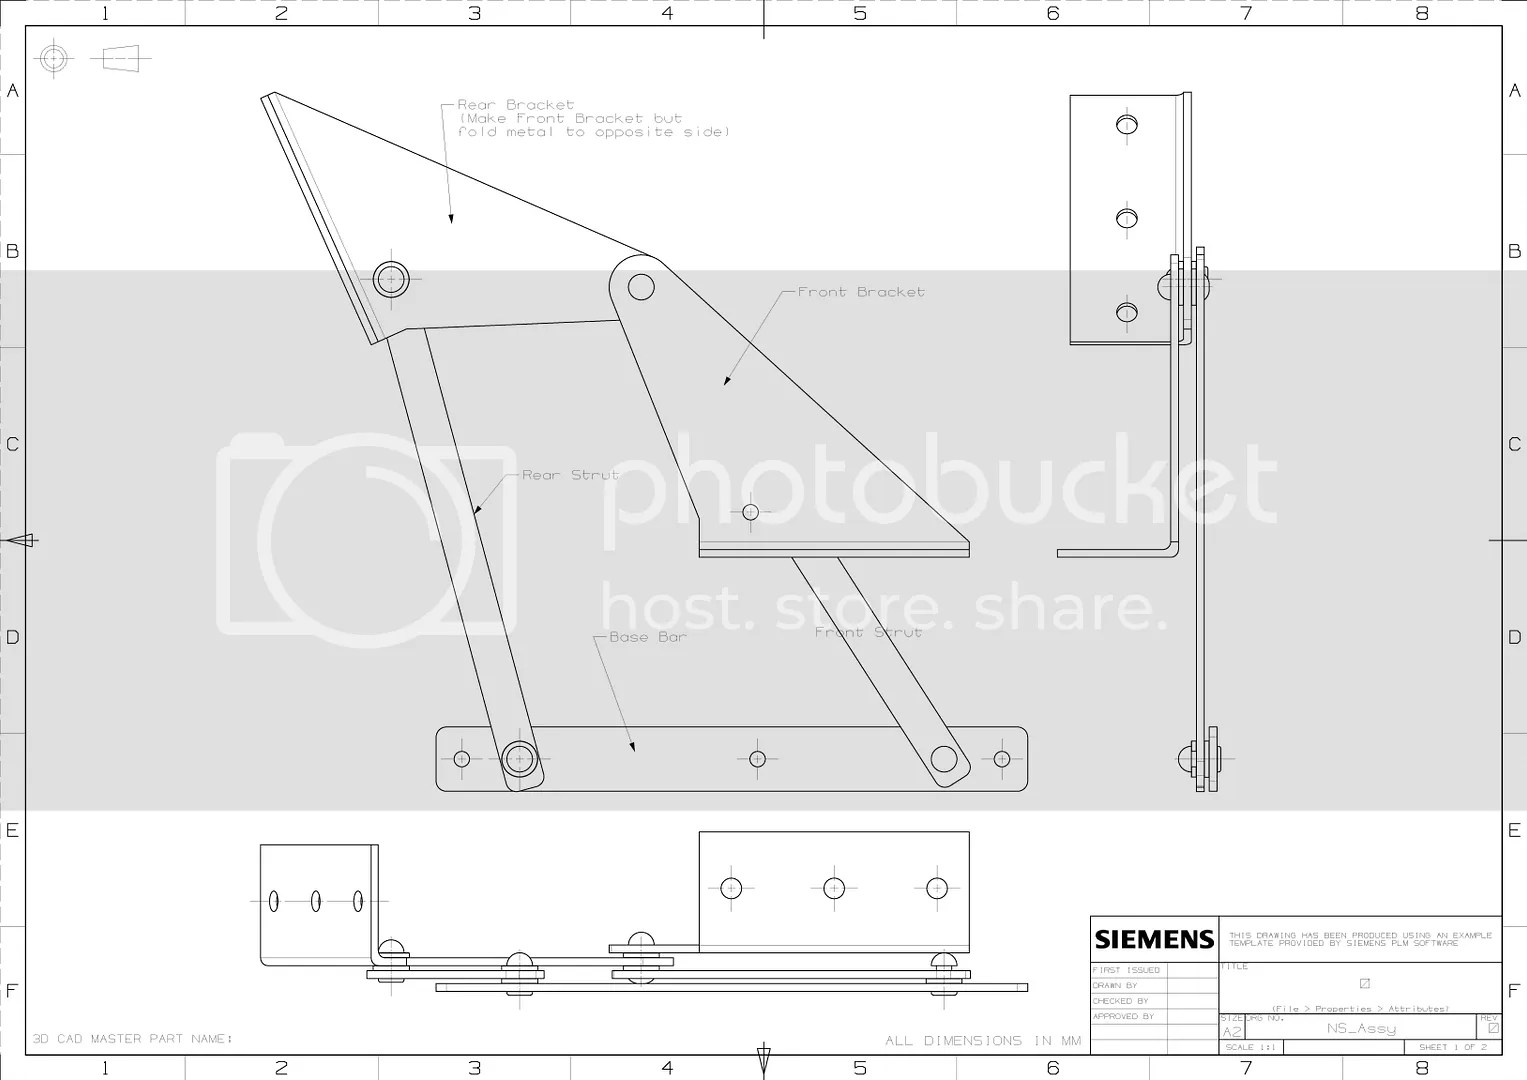 Interior Drawings For Rock Roll Hinges Bed Please